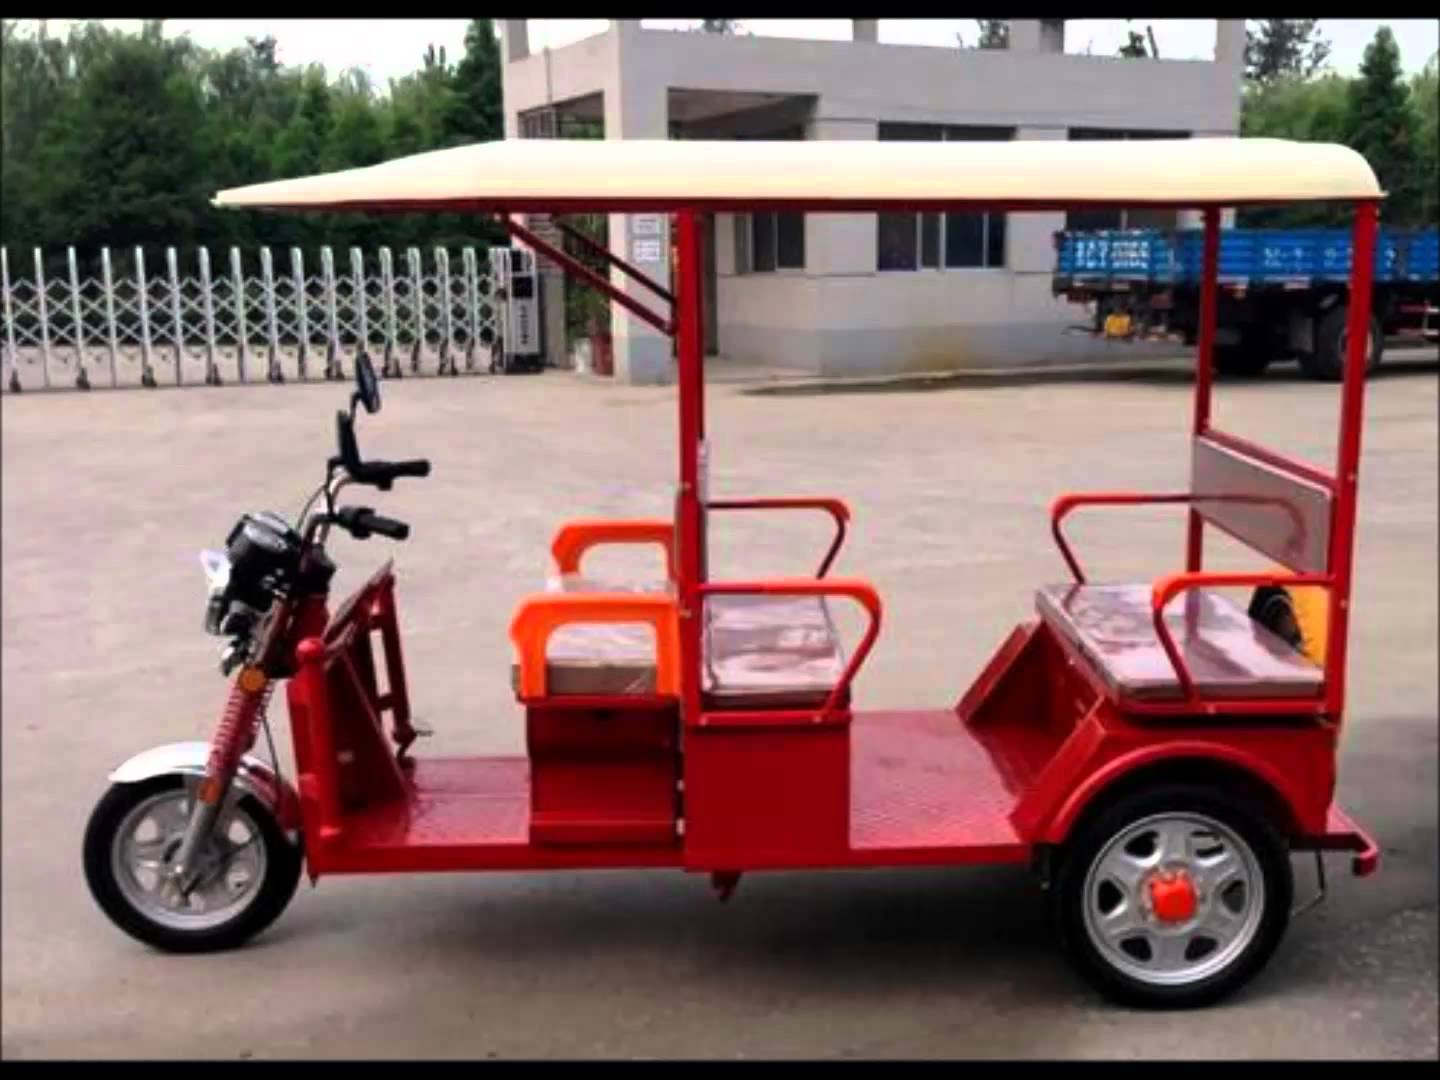 electric three-wheelers: e-rickshaws 'low hanging fruit' to